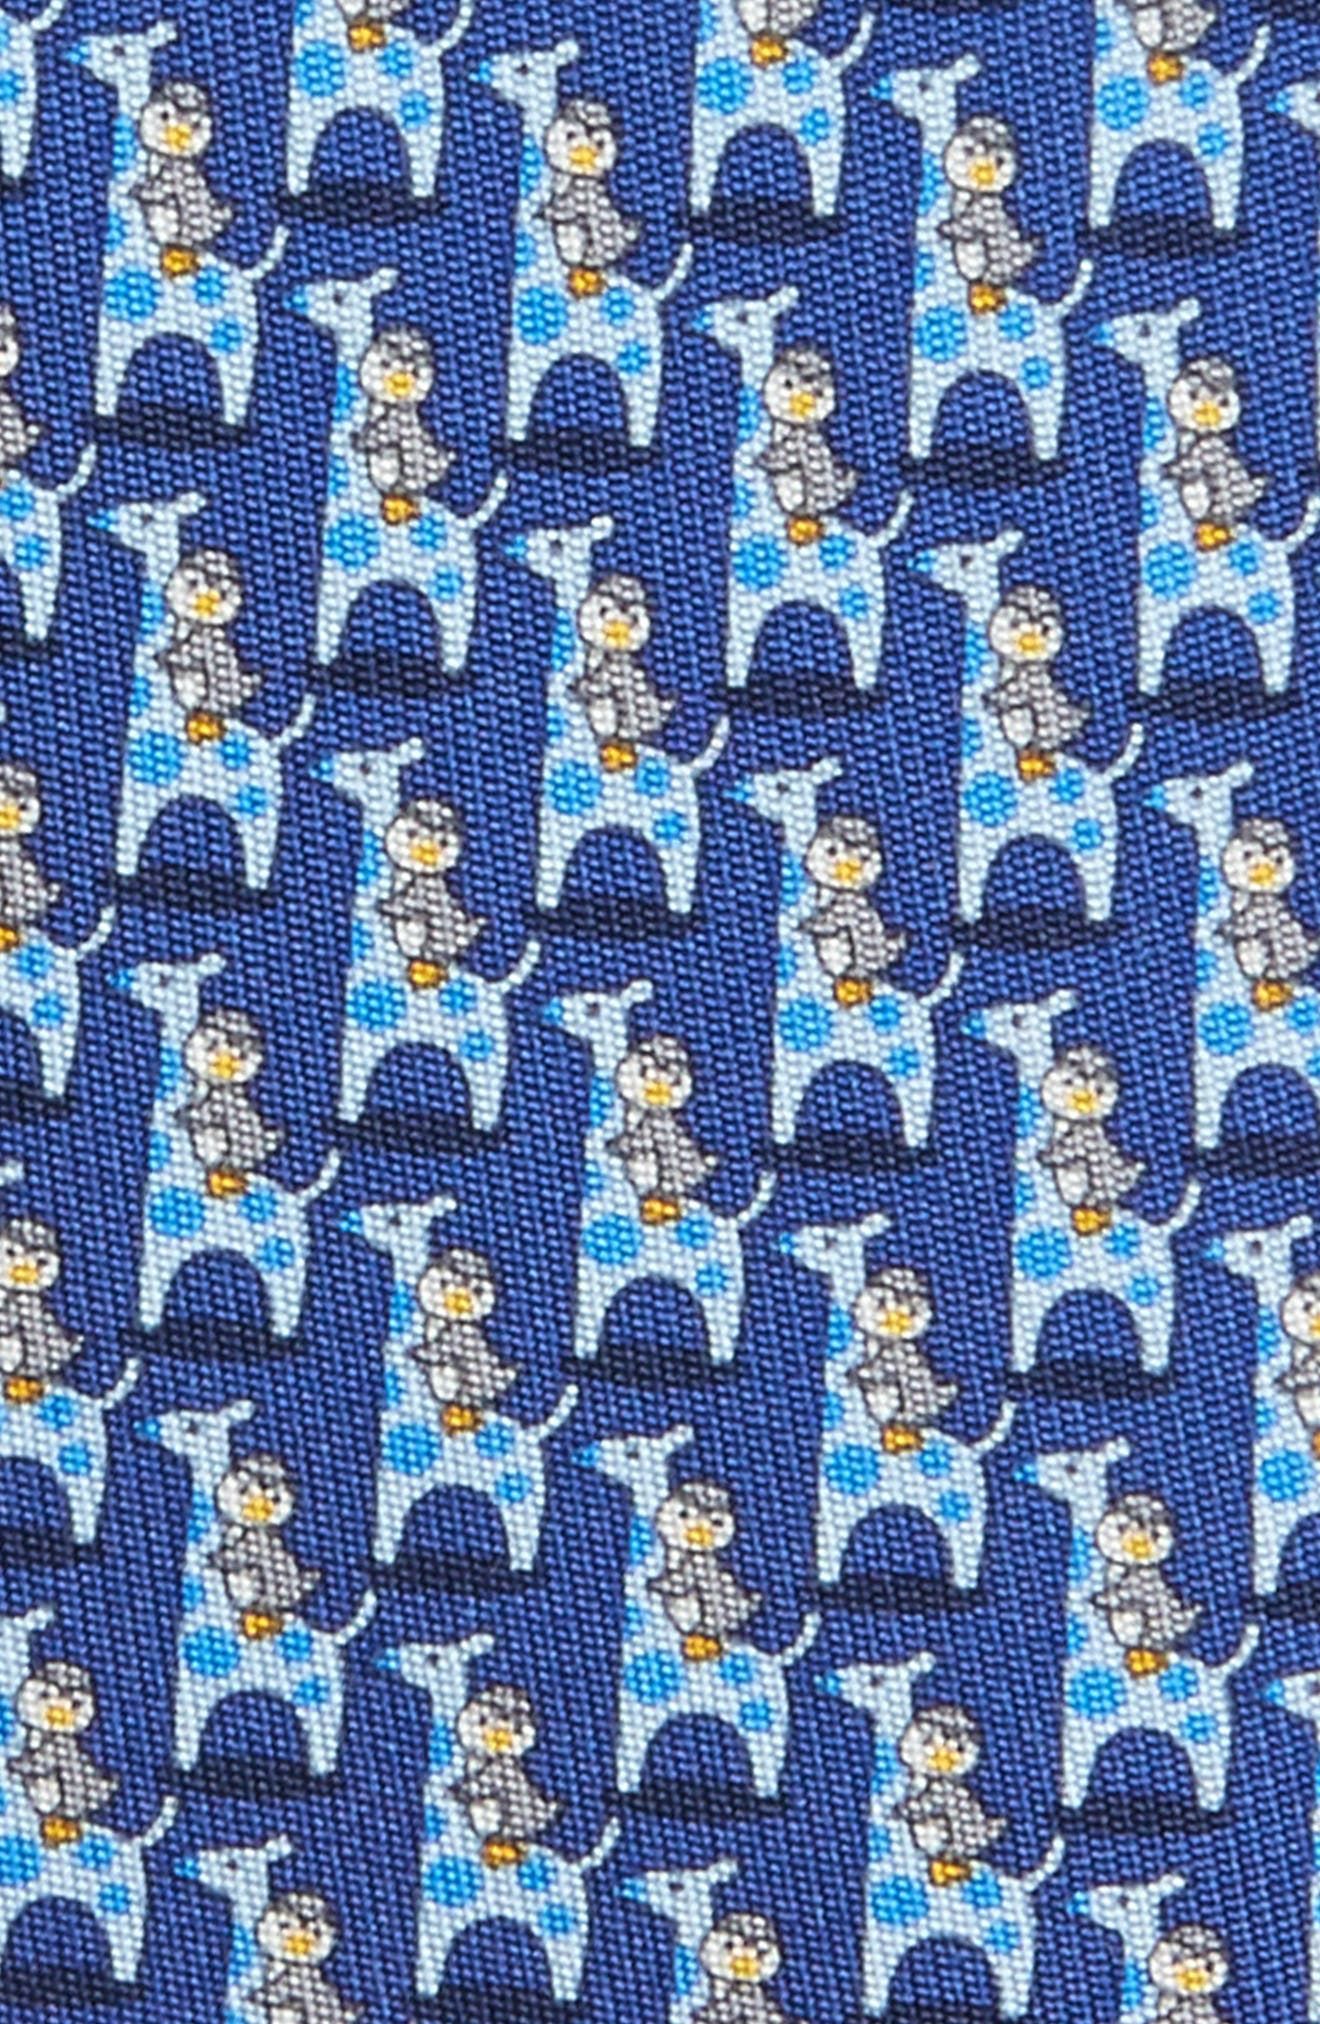 Puffin & Giraffe Silk Tie,                             Alternate thumbnail 2, color,                             Blue